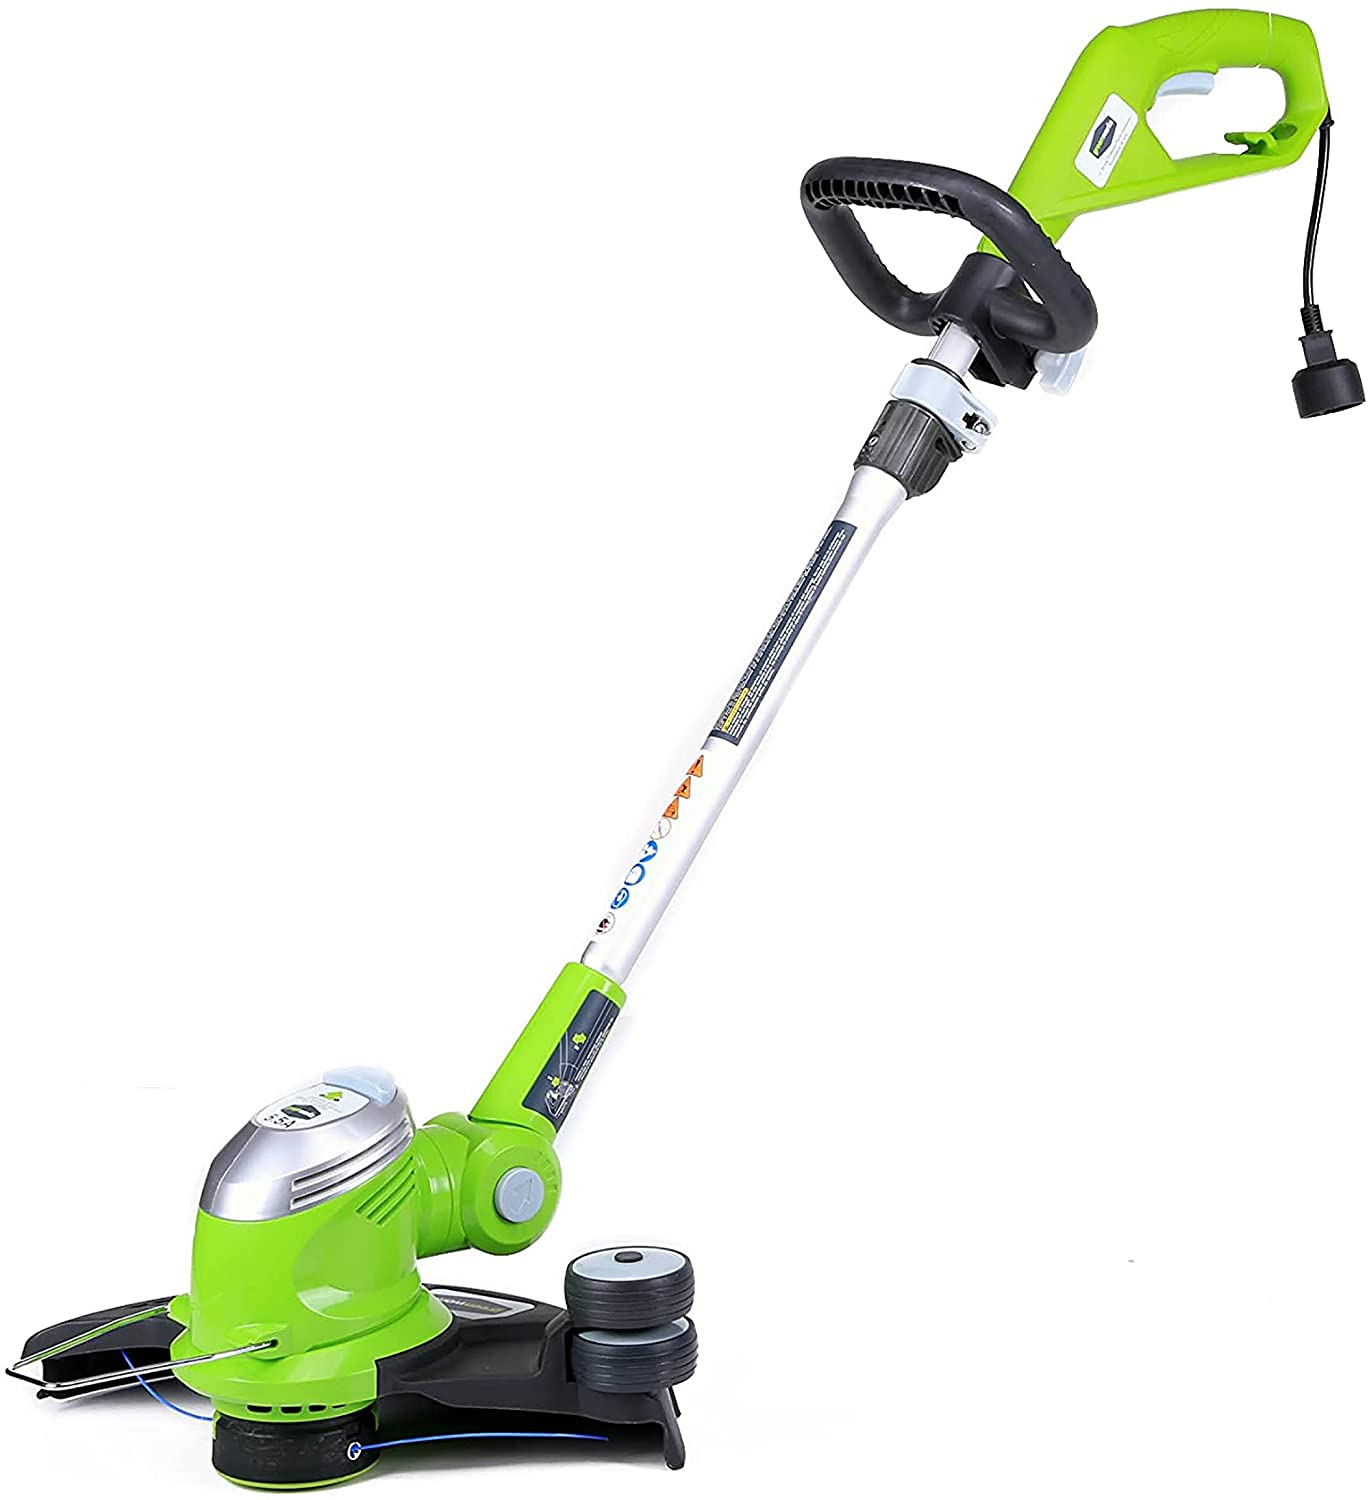 Greenworks 21272 Corded String Trimmer - best string trimmers for the money